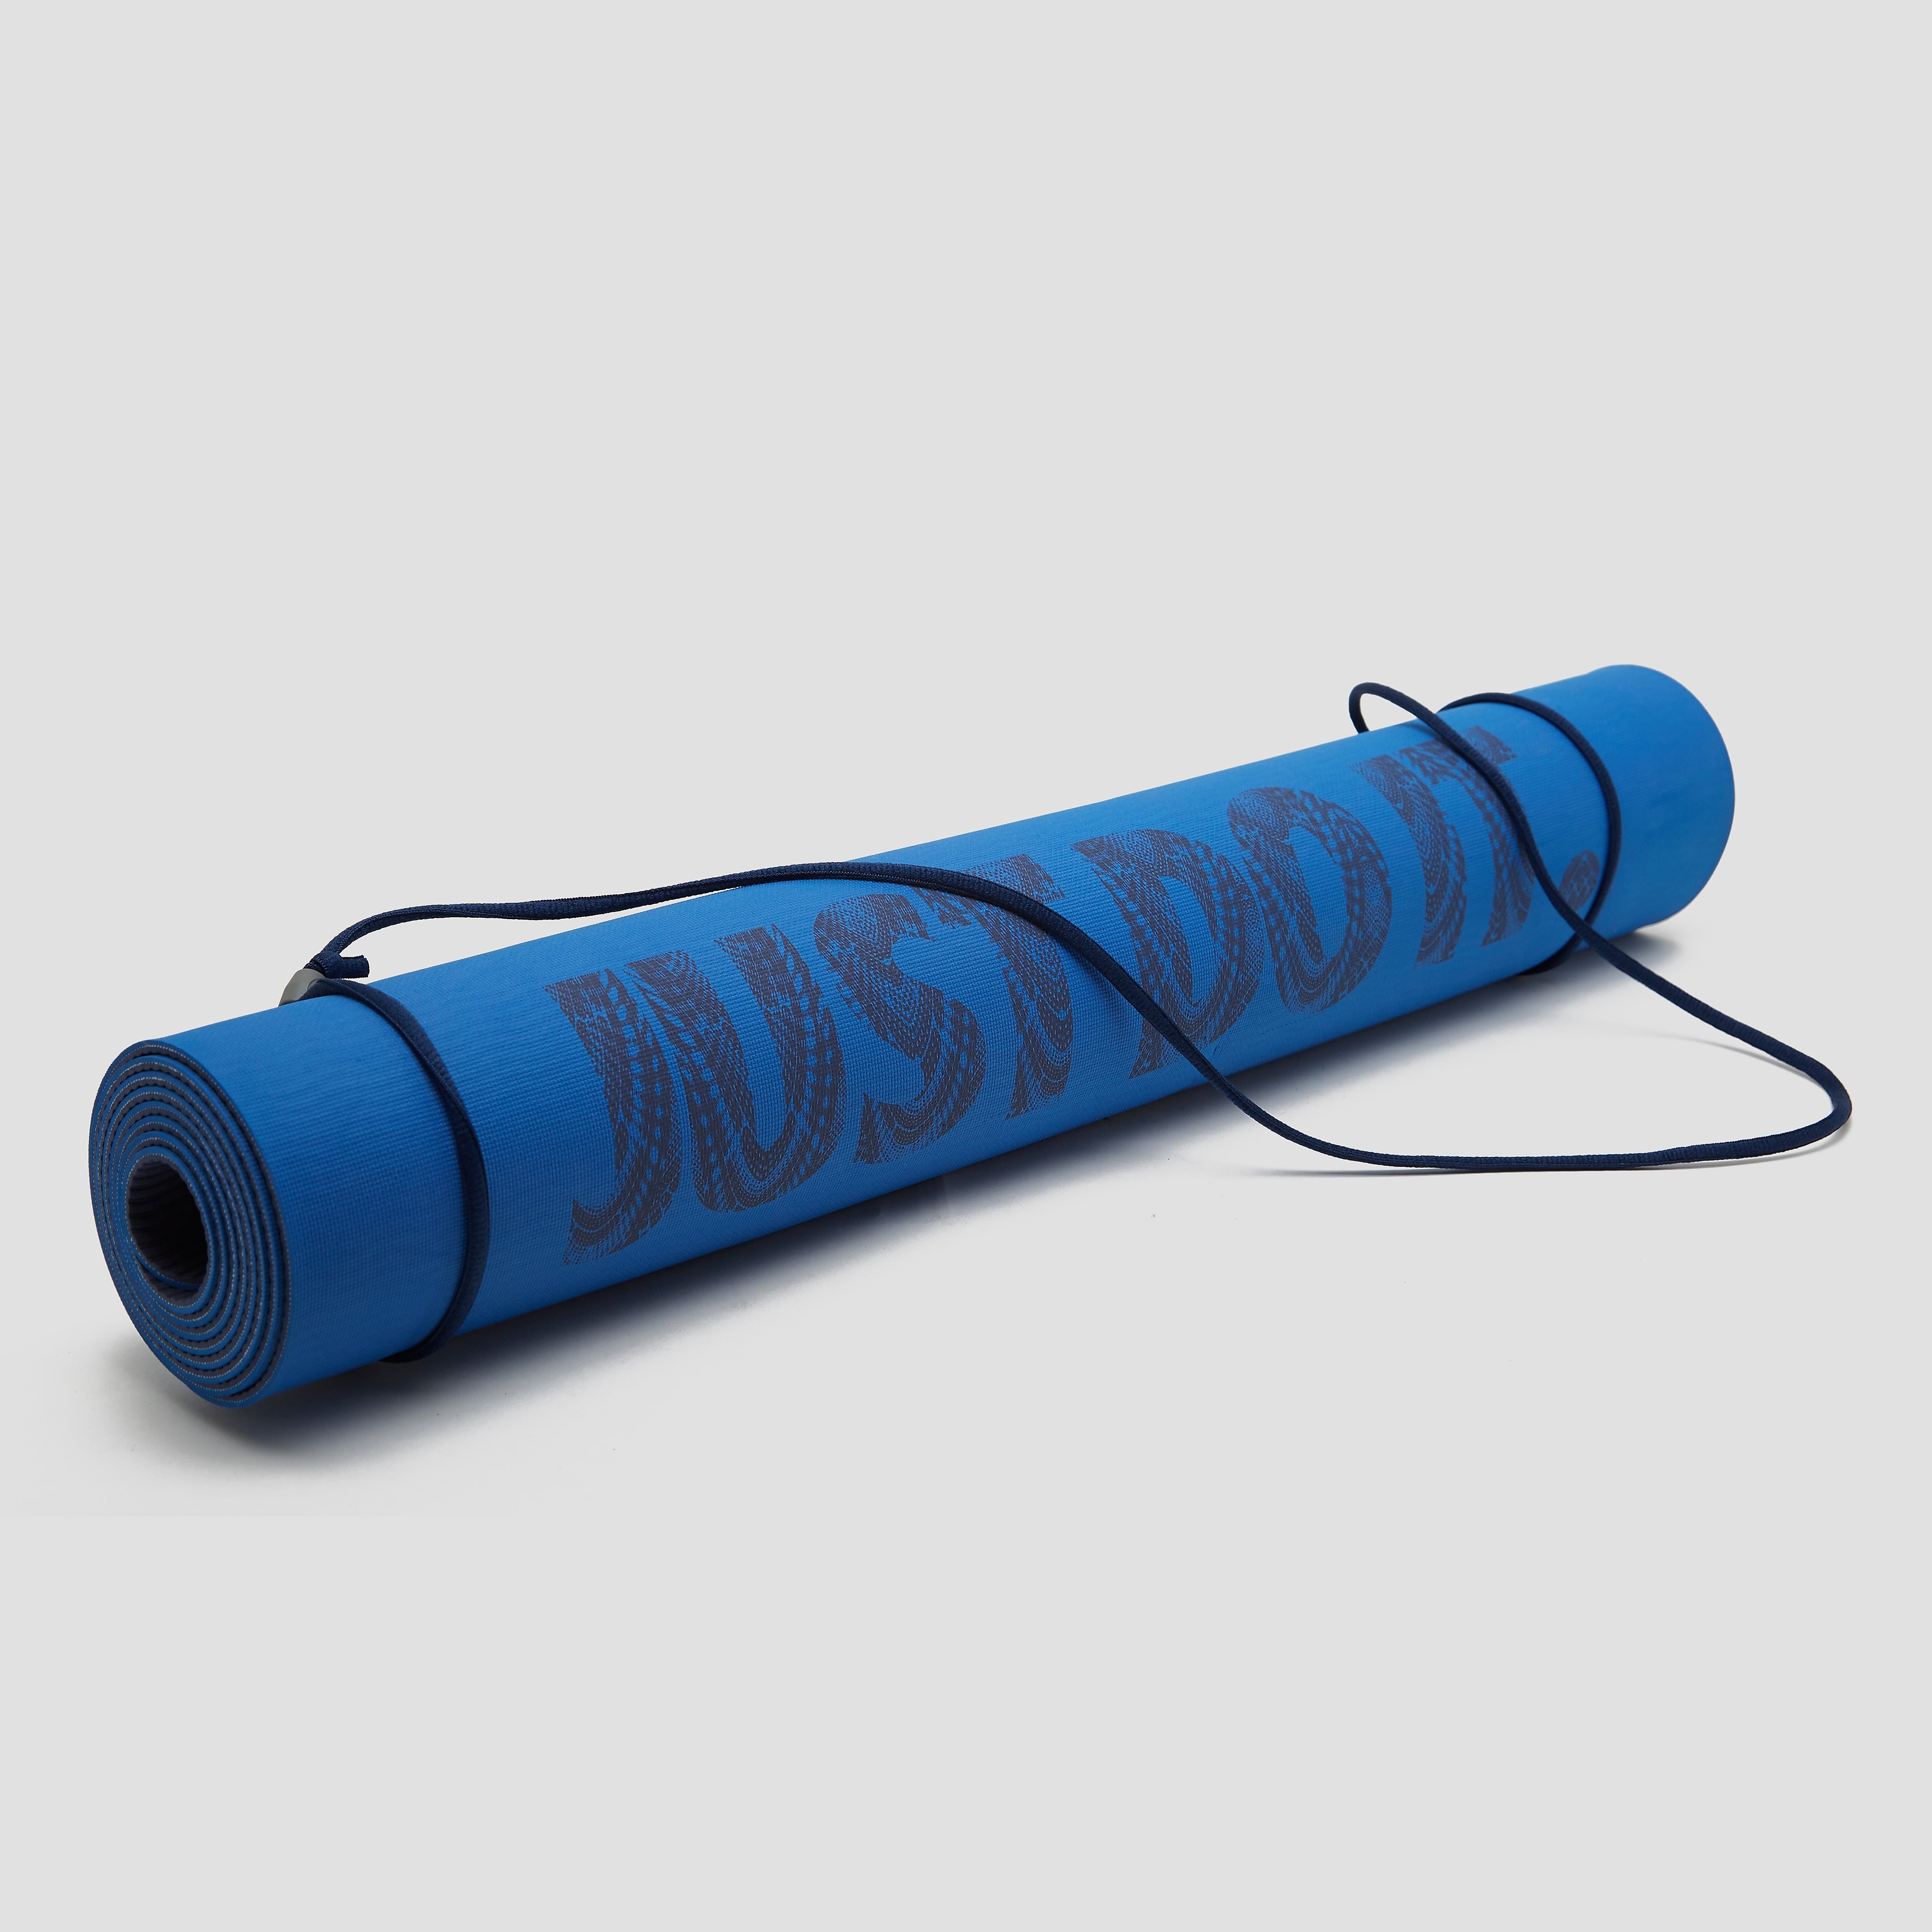 NIKE JUST DO IT YOGA MAT BLAUW